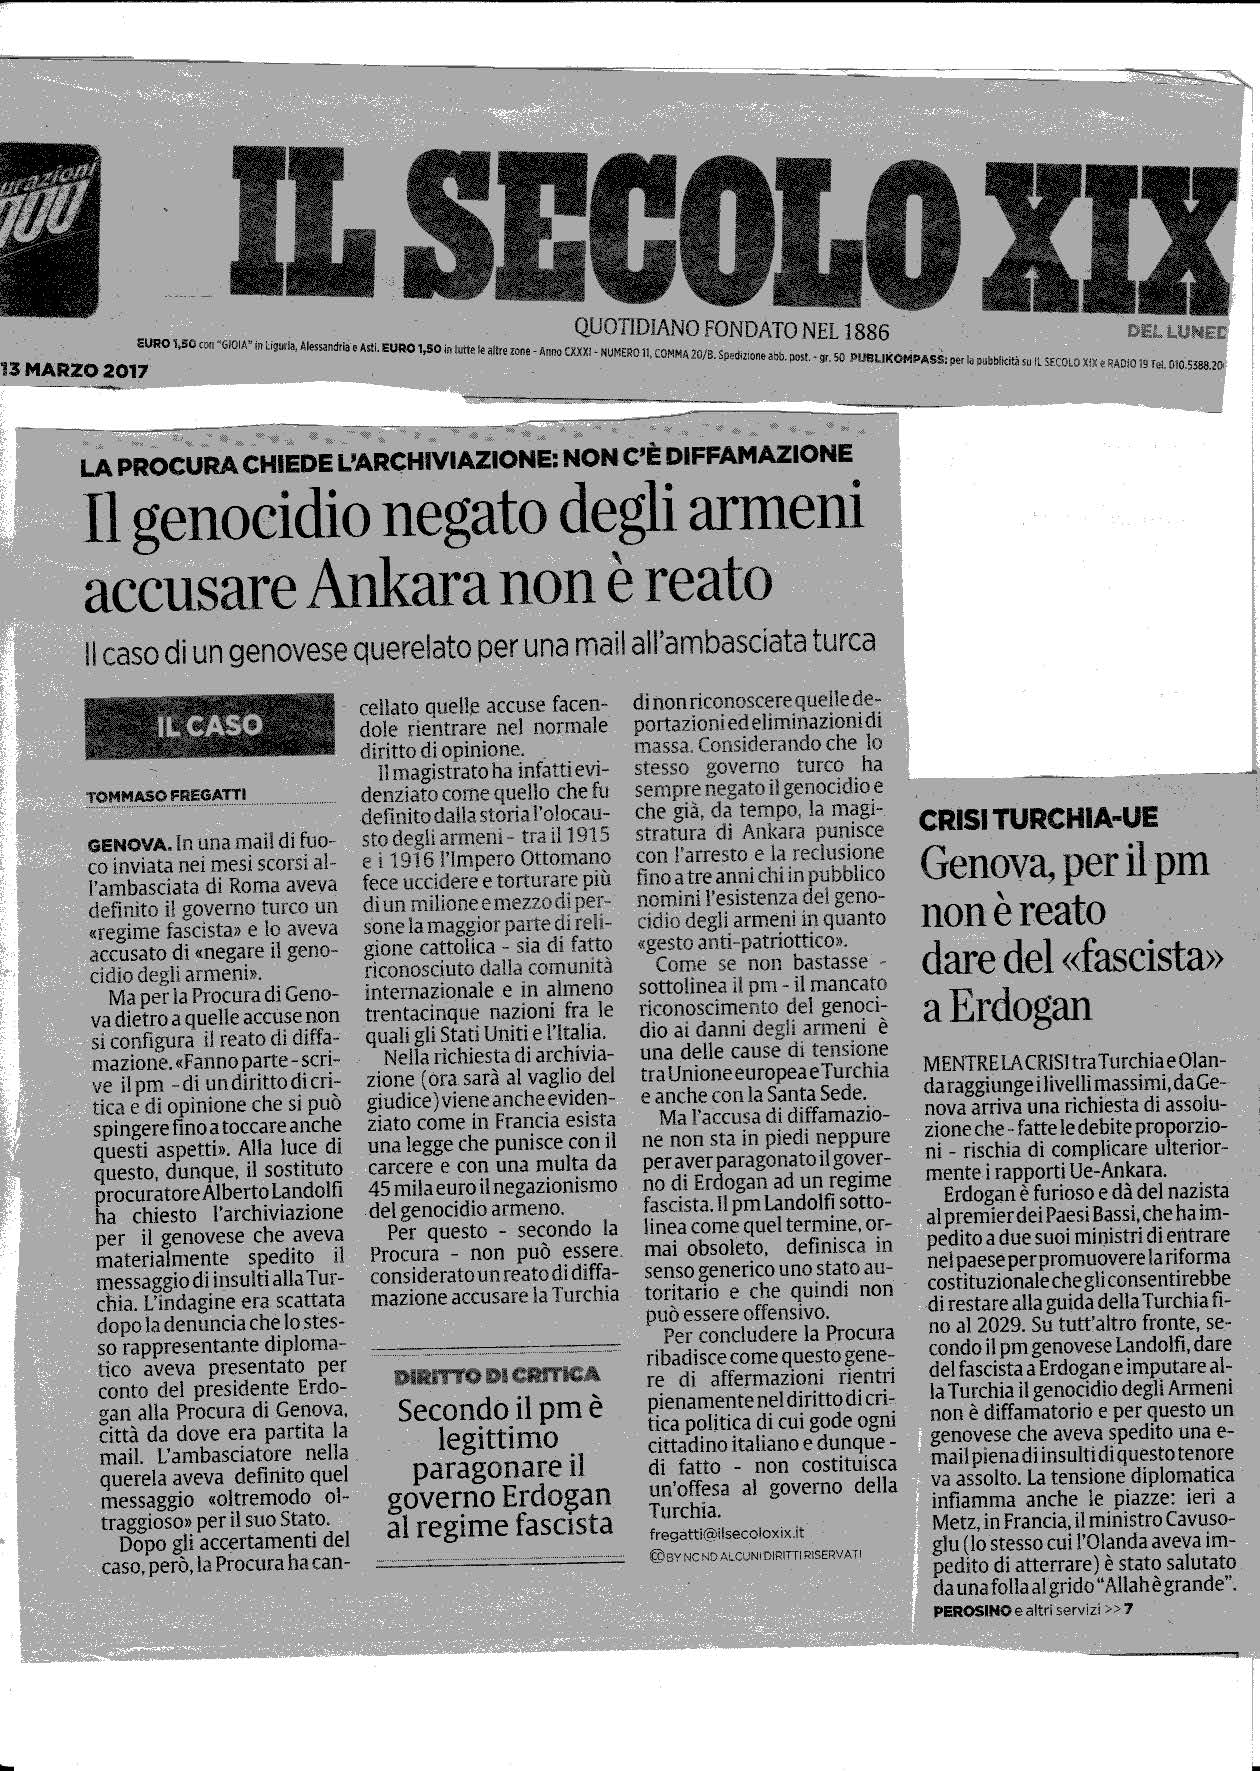 http://www.unionearmeni.it/data/wp-content/uploads/2017/03/articolo-del-Secolo-XIX.jpg